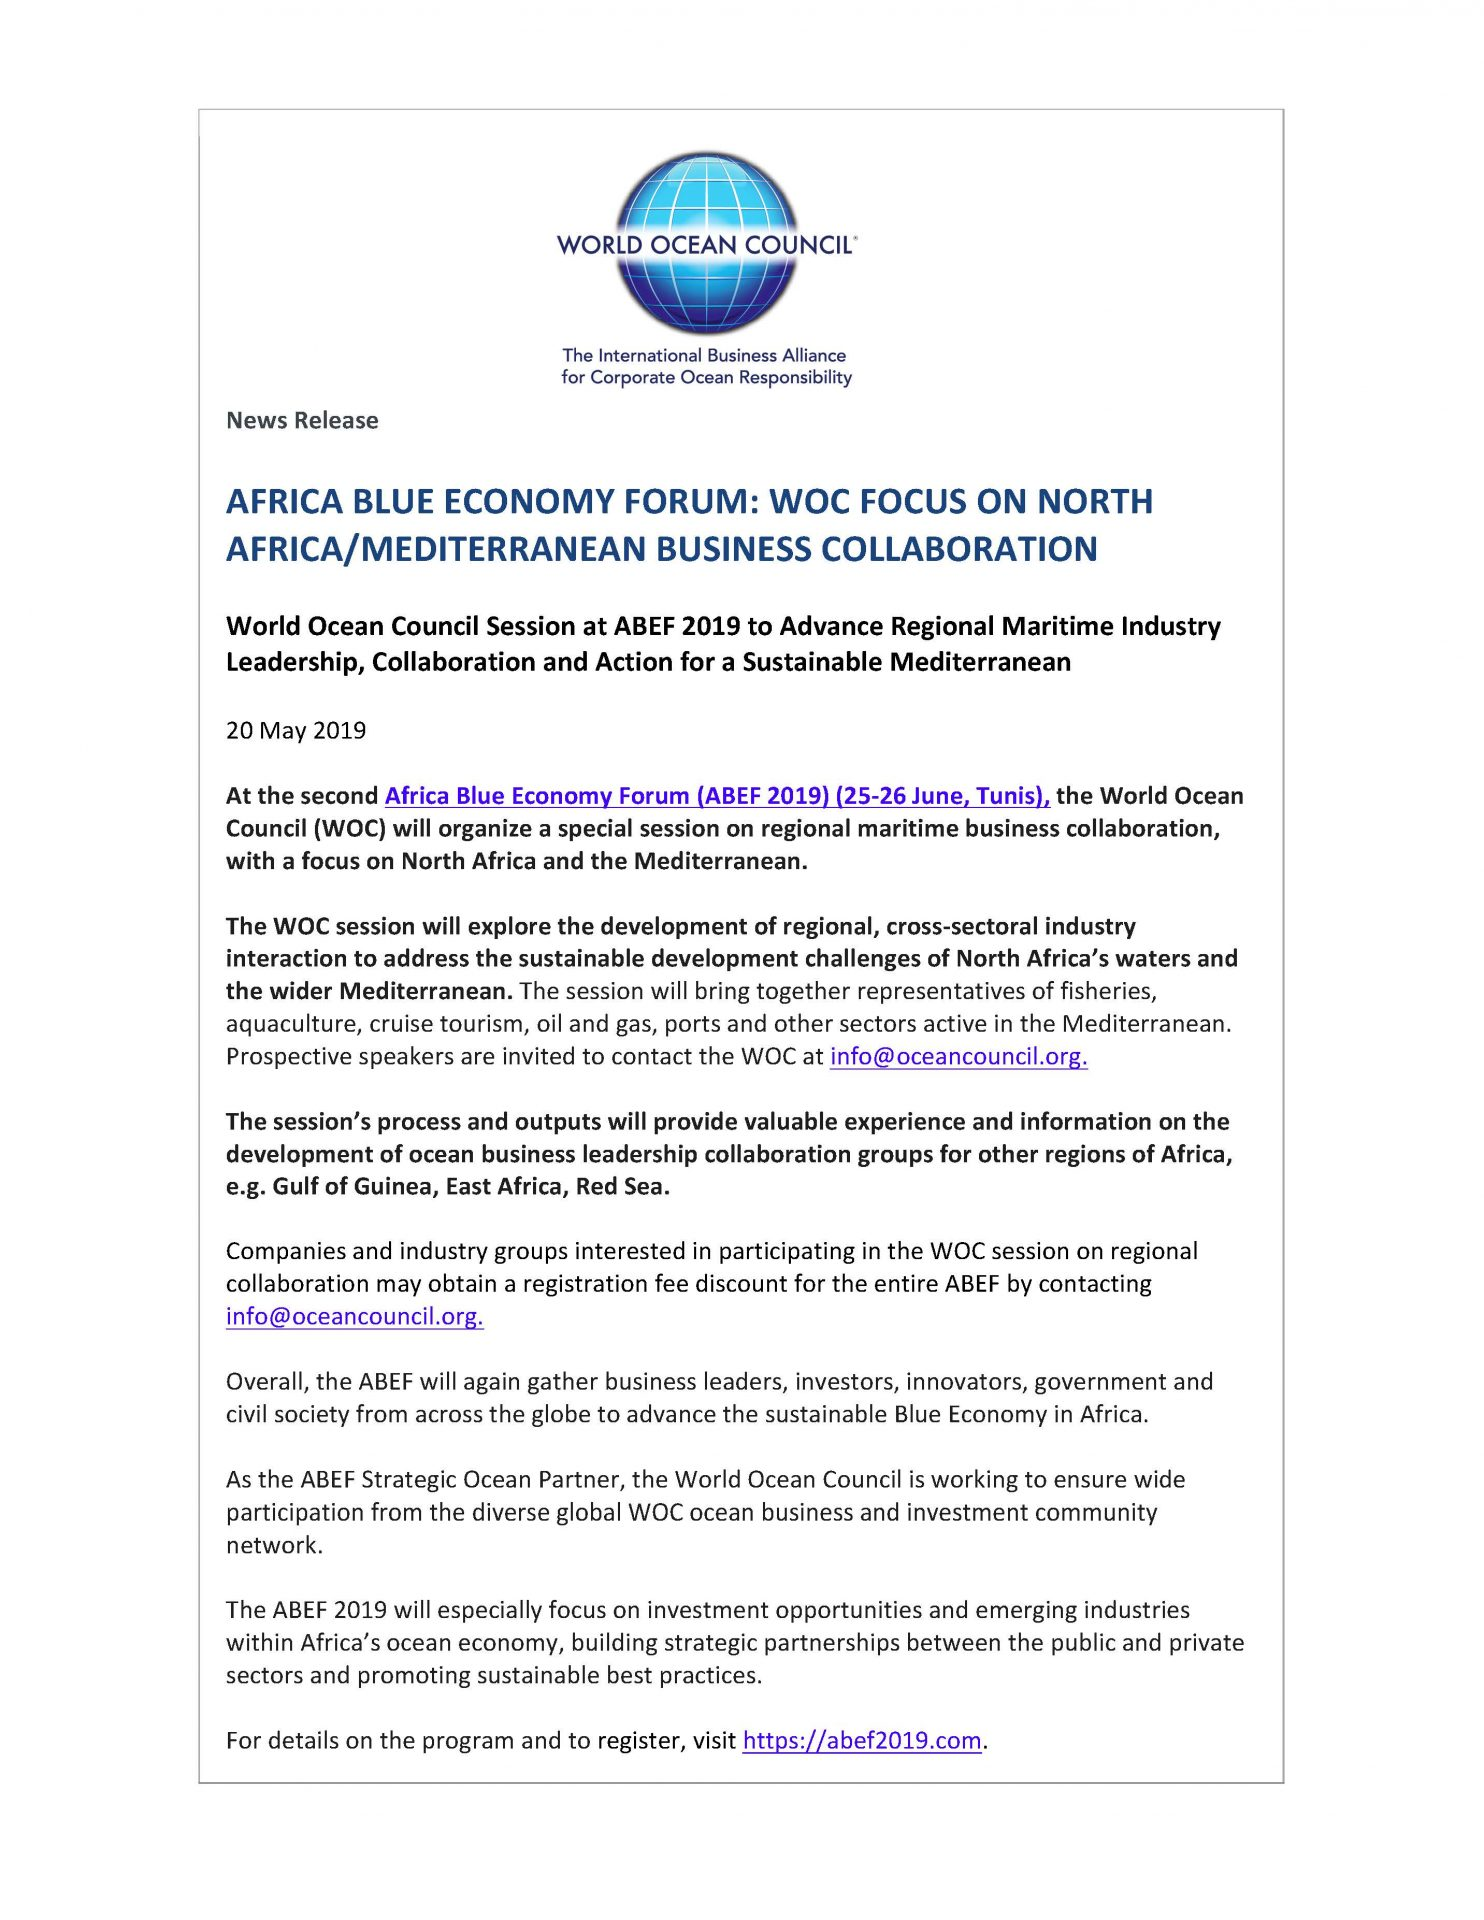 Africa Blue Economy Forum - WOC Focus On North Africa/Mediterranean Business Collaboration - 20 May 2019